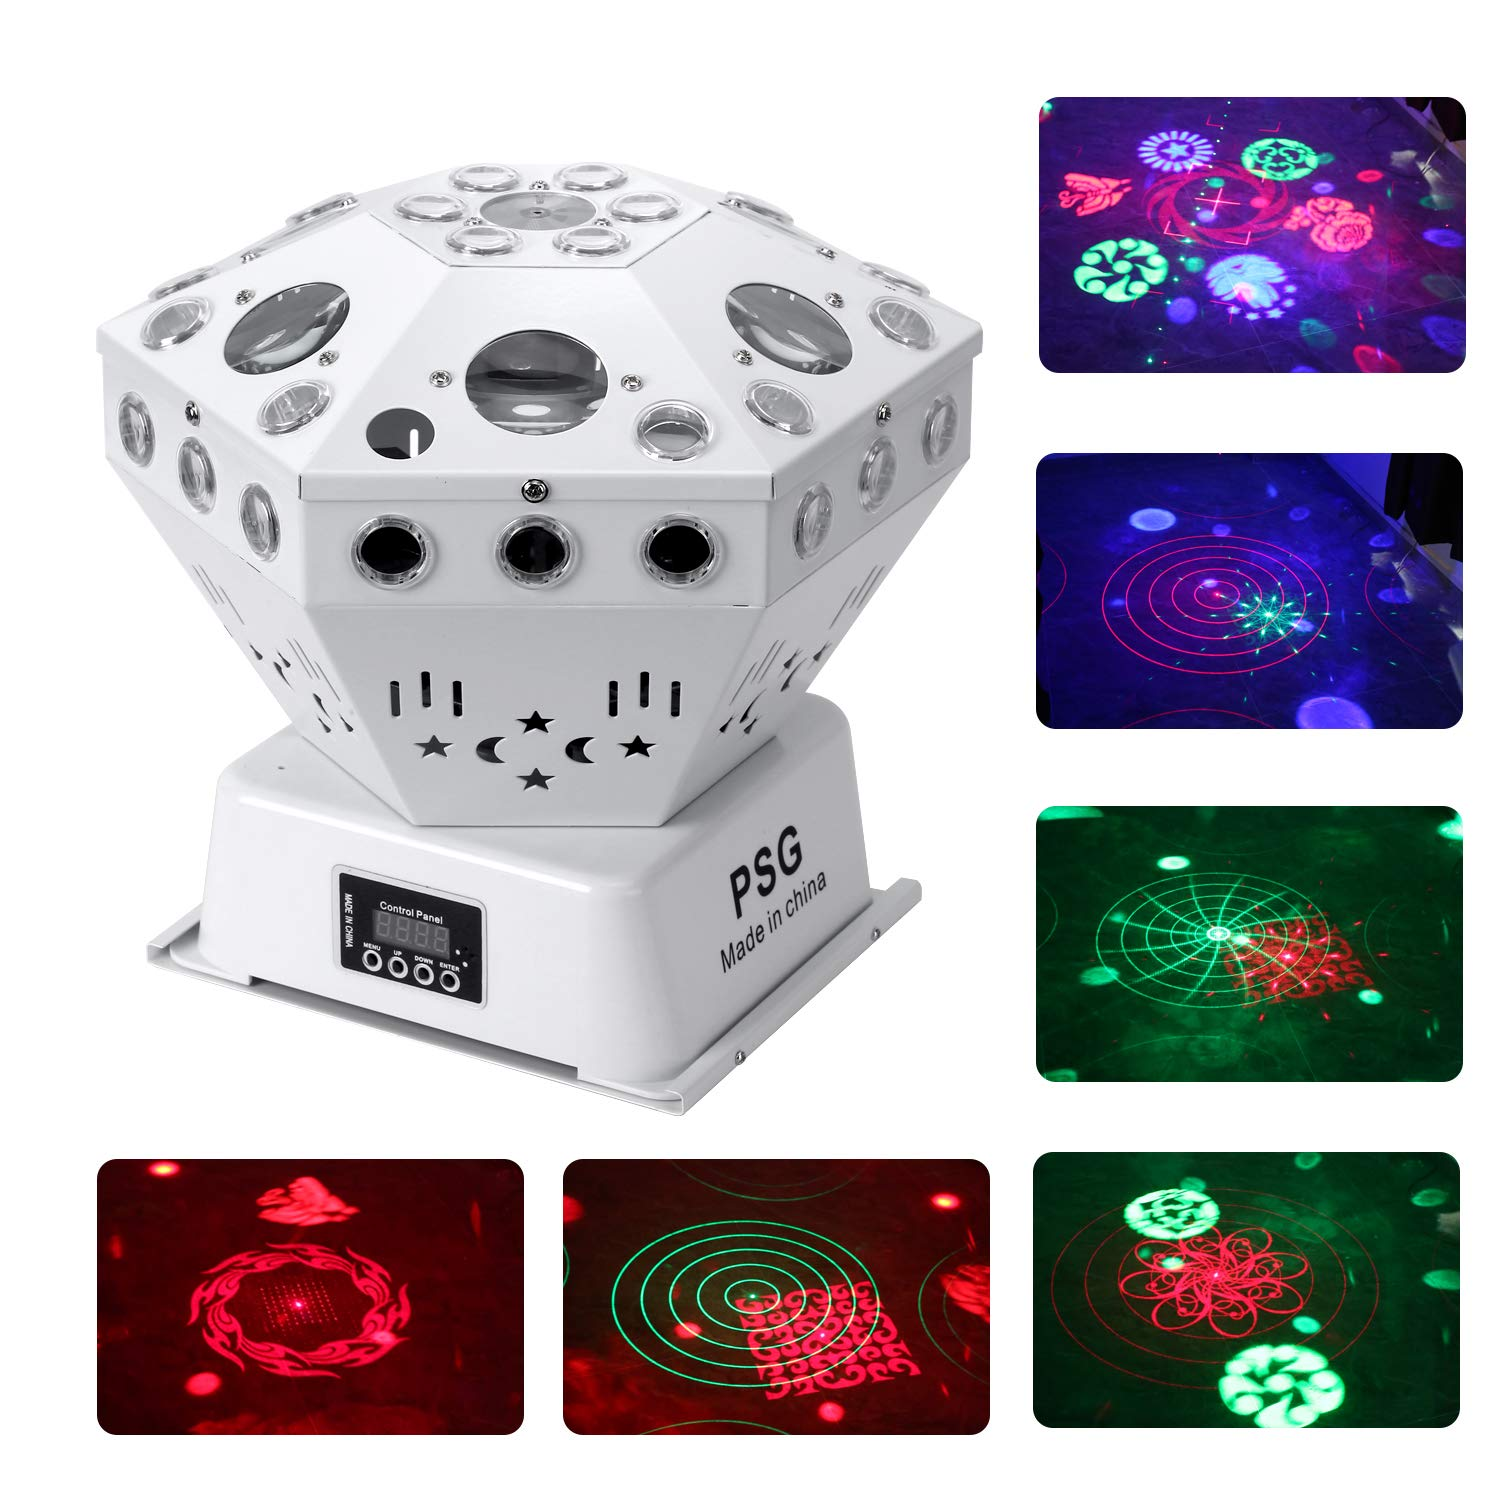 Stage Lights, Sound Activated RGB Party Lights DJ Lighting, 63 LED bar Lights and DMX Control for Church, Wedding, Stage Lighting Birthday Party(need an adapter) (Laser and Pattern) by PSG